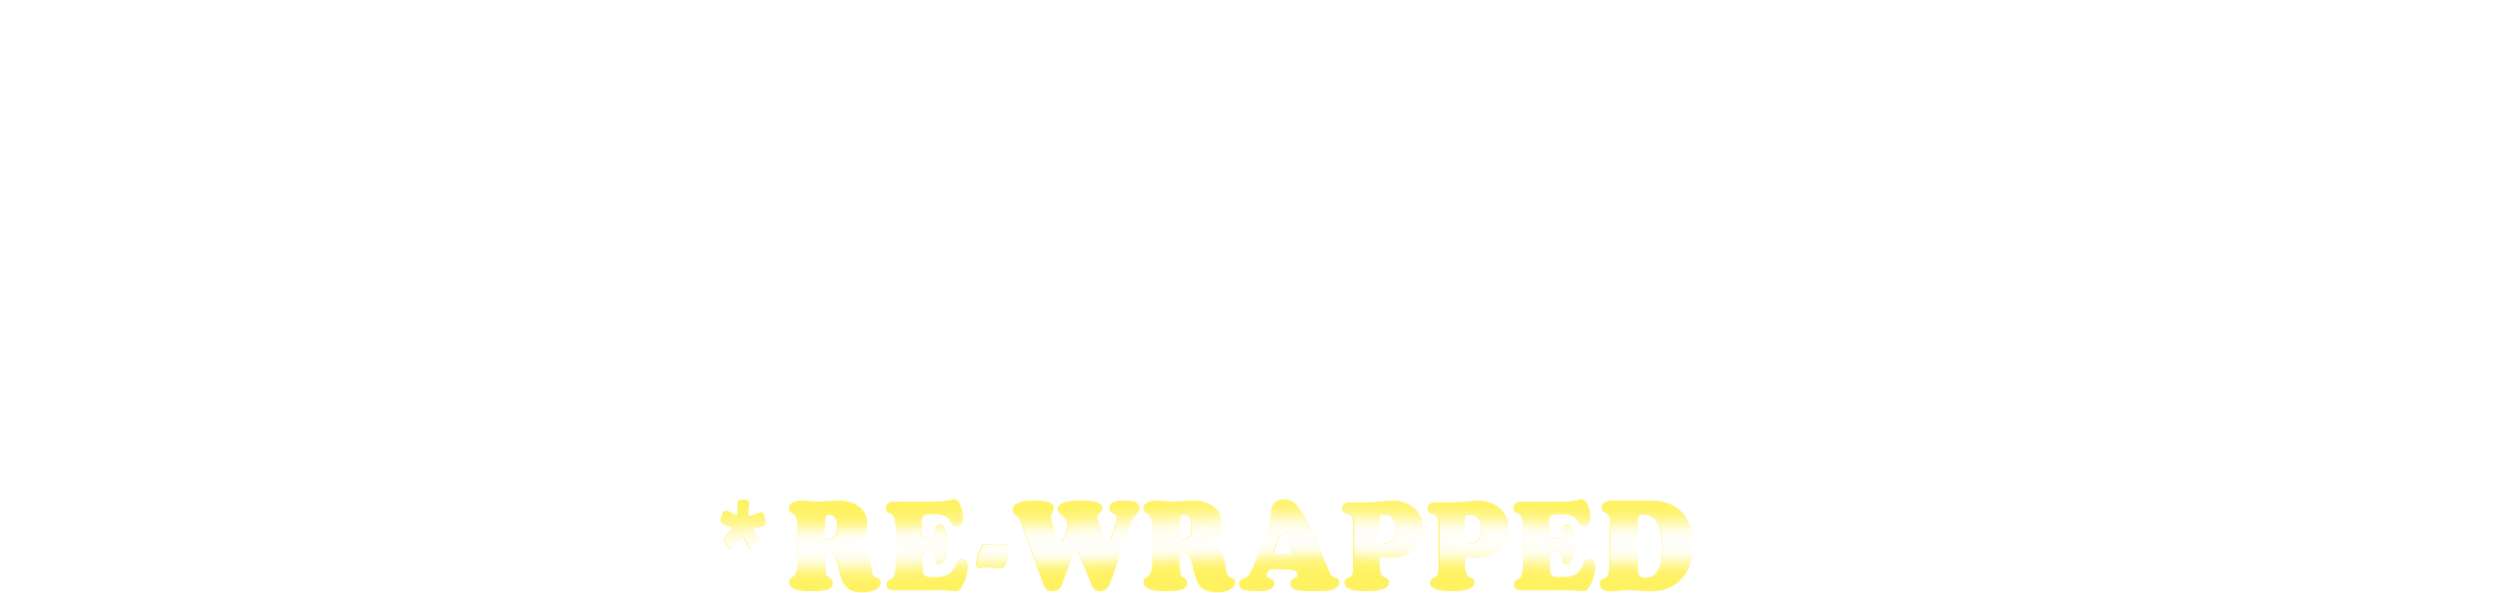 Merry Christmas Lil Mama.Merry Christmas Lil Mama Re Wrapped Chance The Rapper